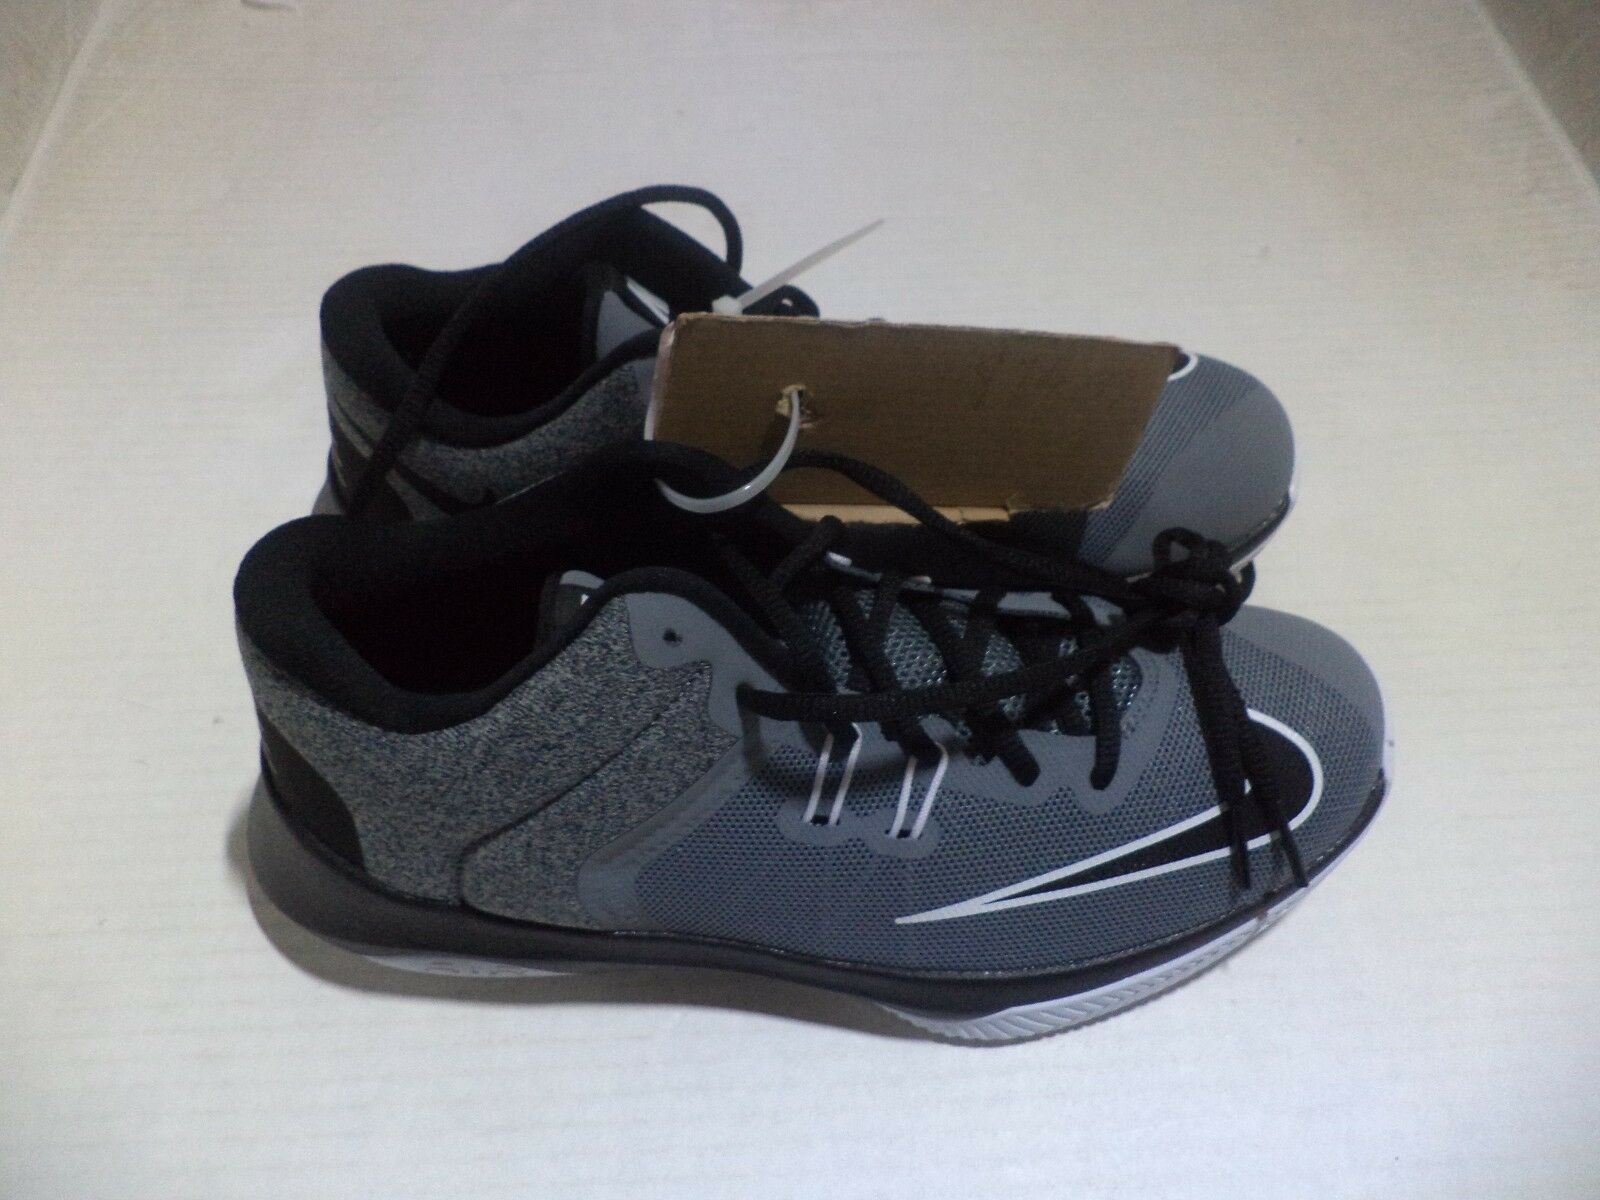 NIKE Men's Air Versitile II Basketball Shoe Comfortable Cheap and beautiful fashion